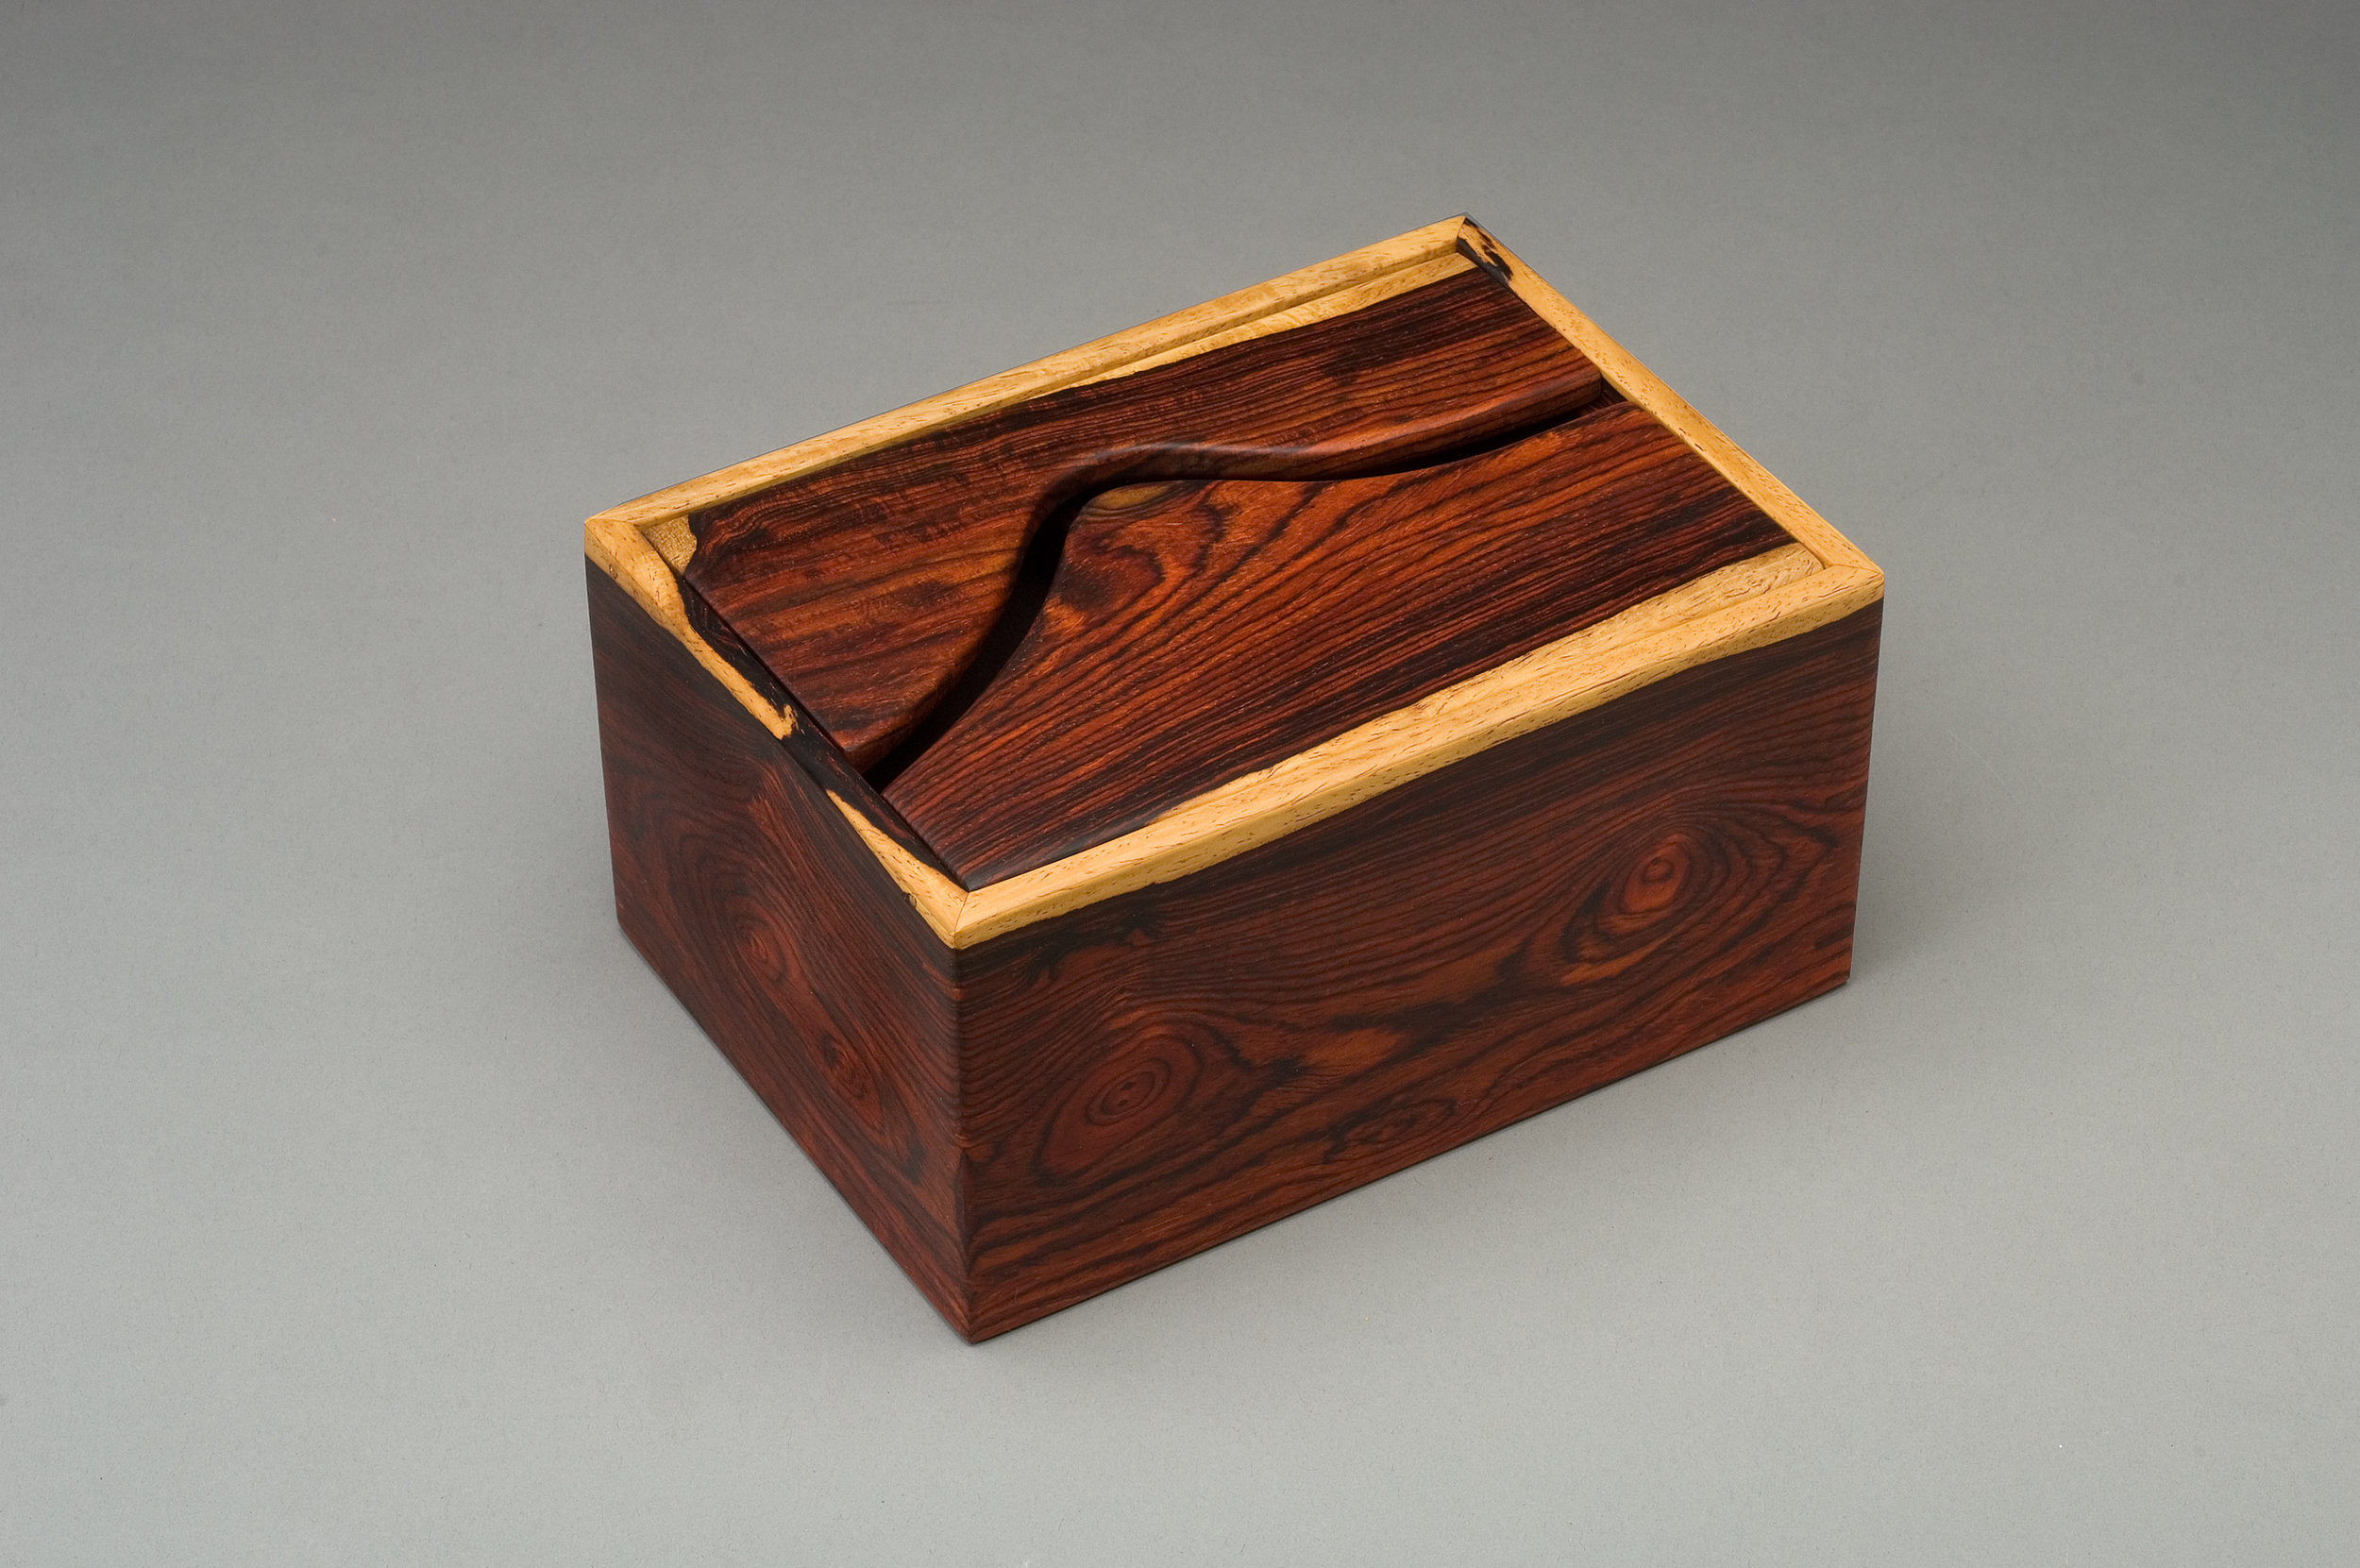 COCOBOLO HARDWOOD WITH A SLIDING TRAY